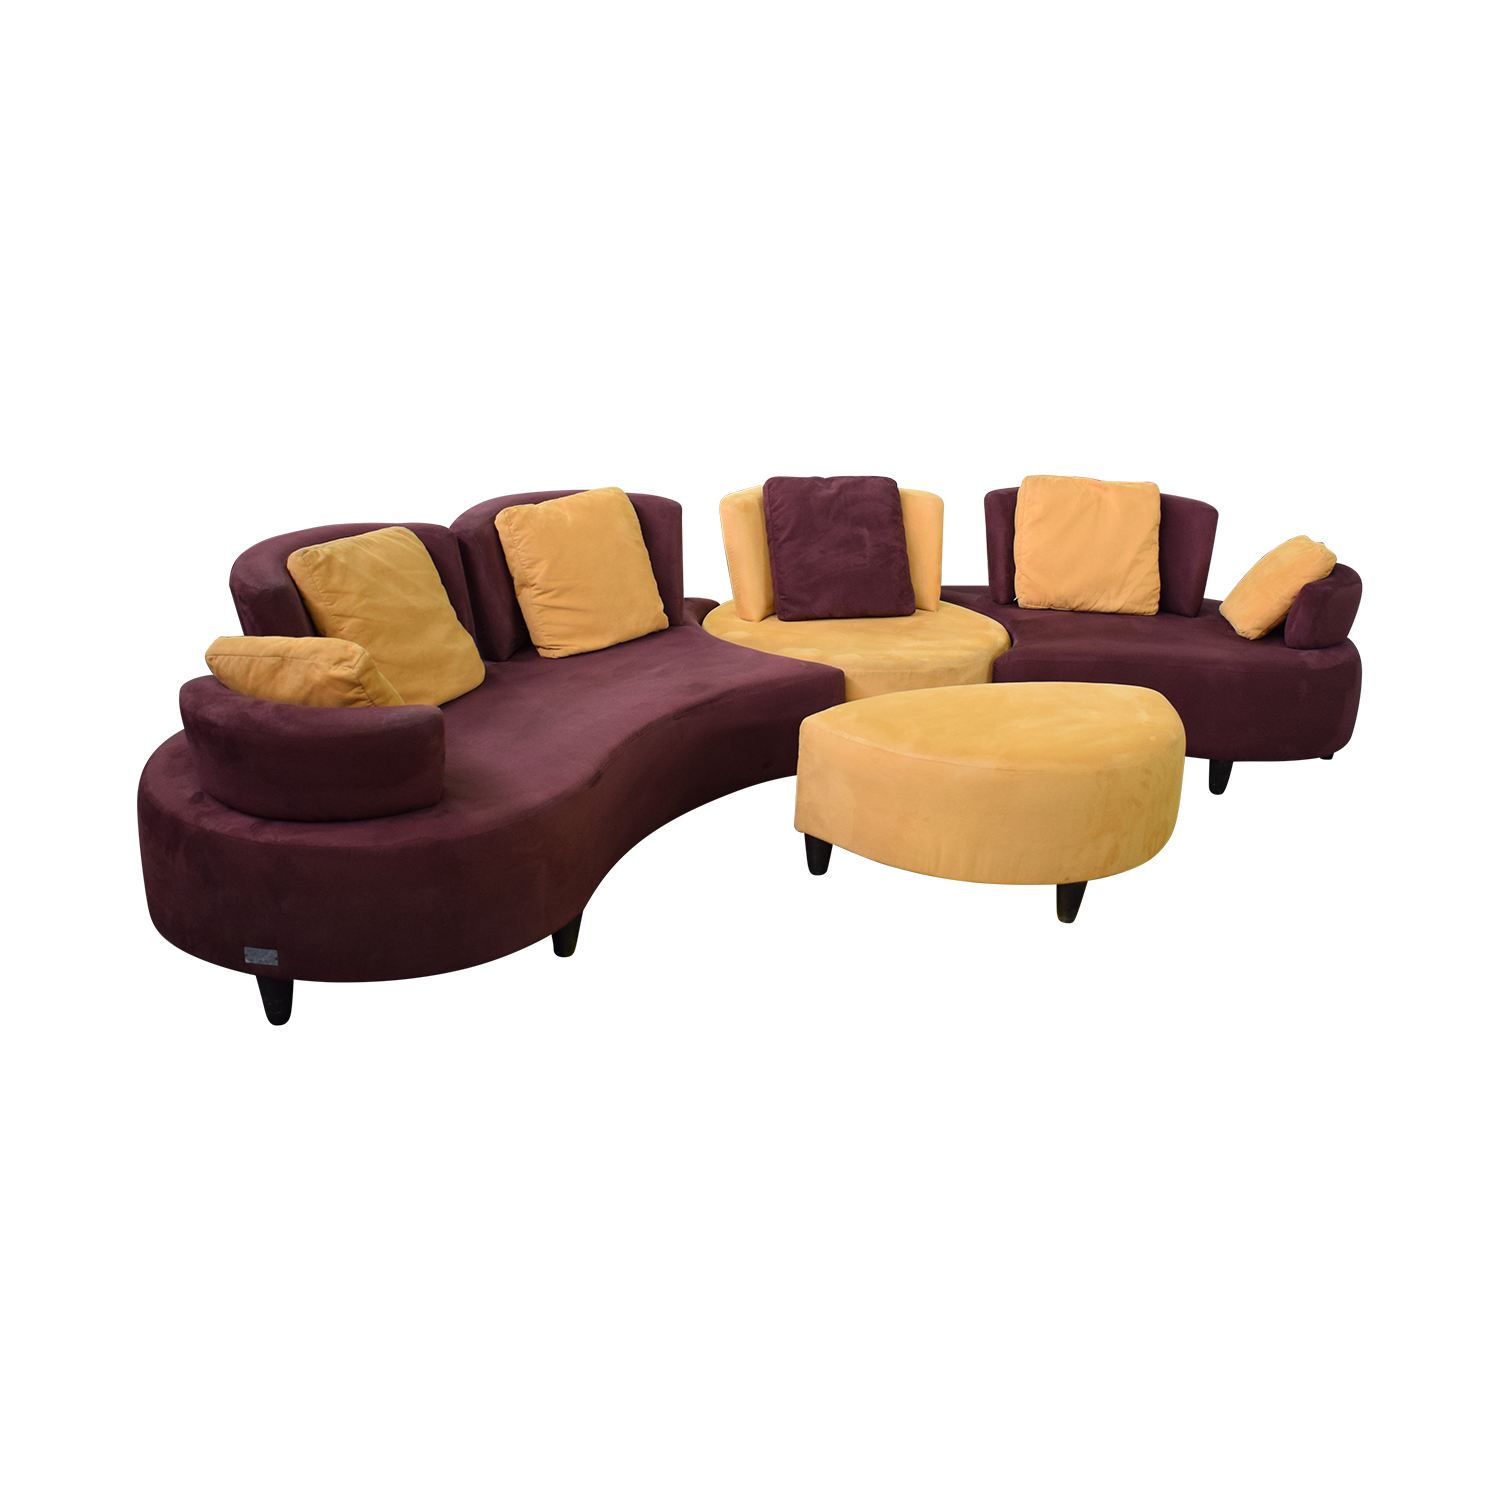 Normand Couture Design Normand Couture Design Cameleon Sectional Sofa on sale